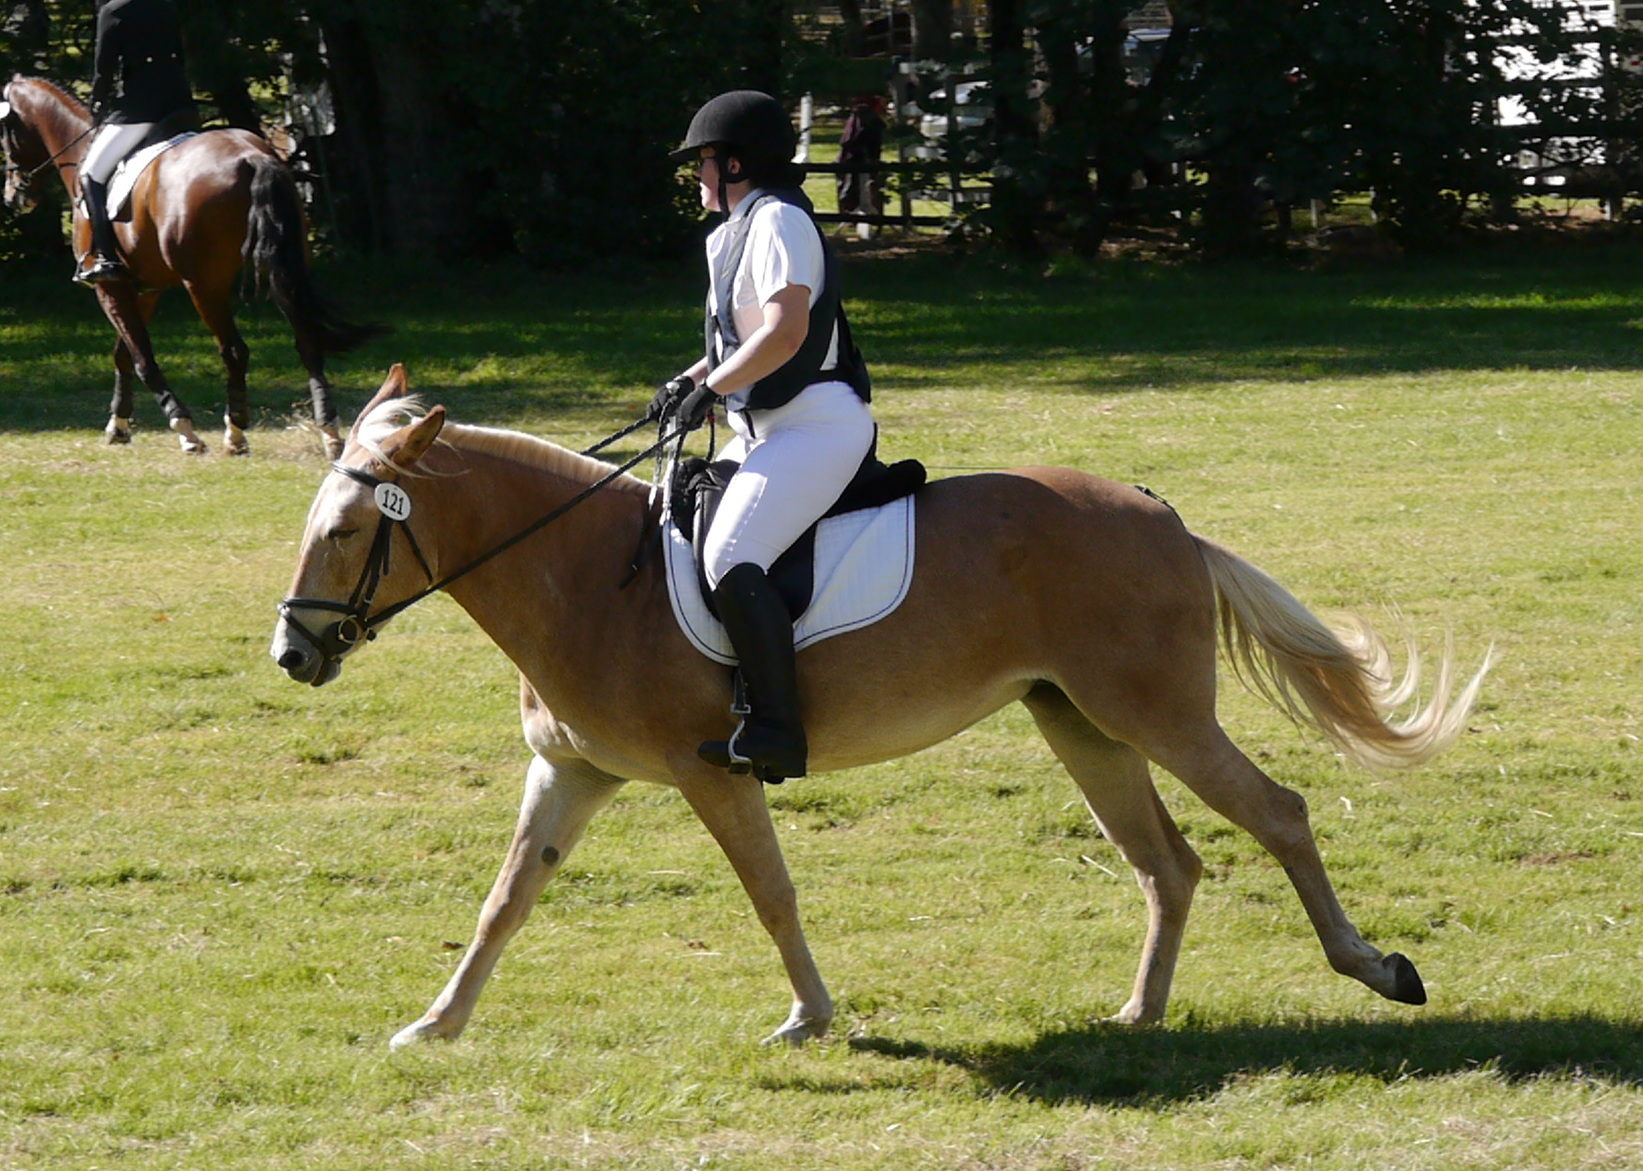 This is a dressage canter, right?